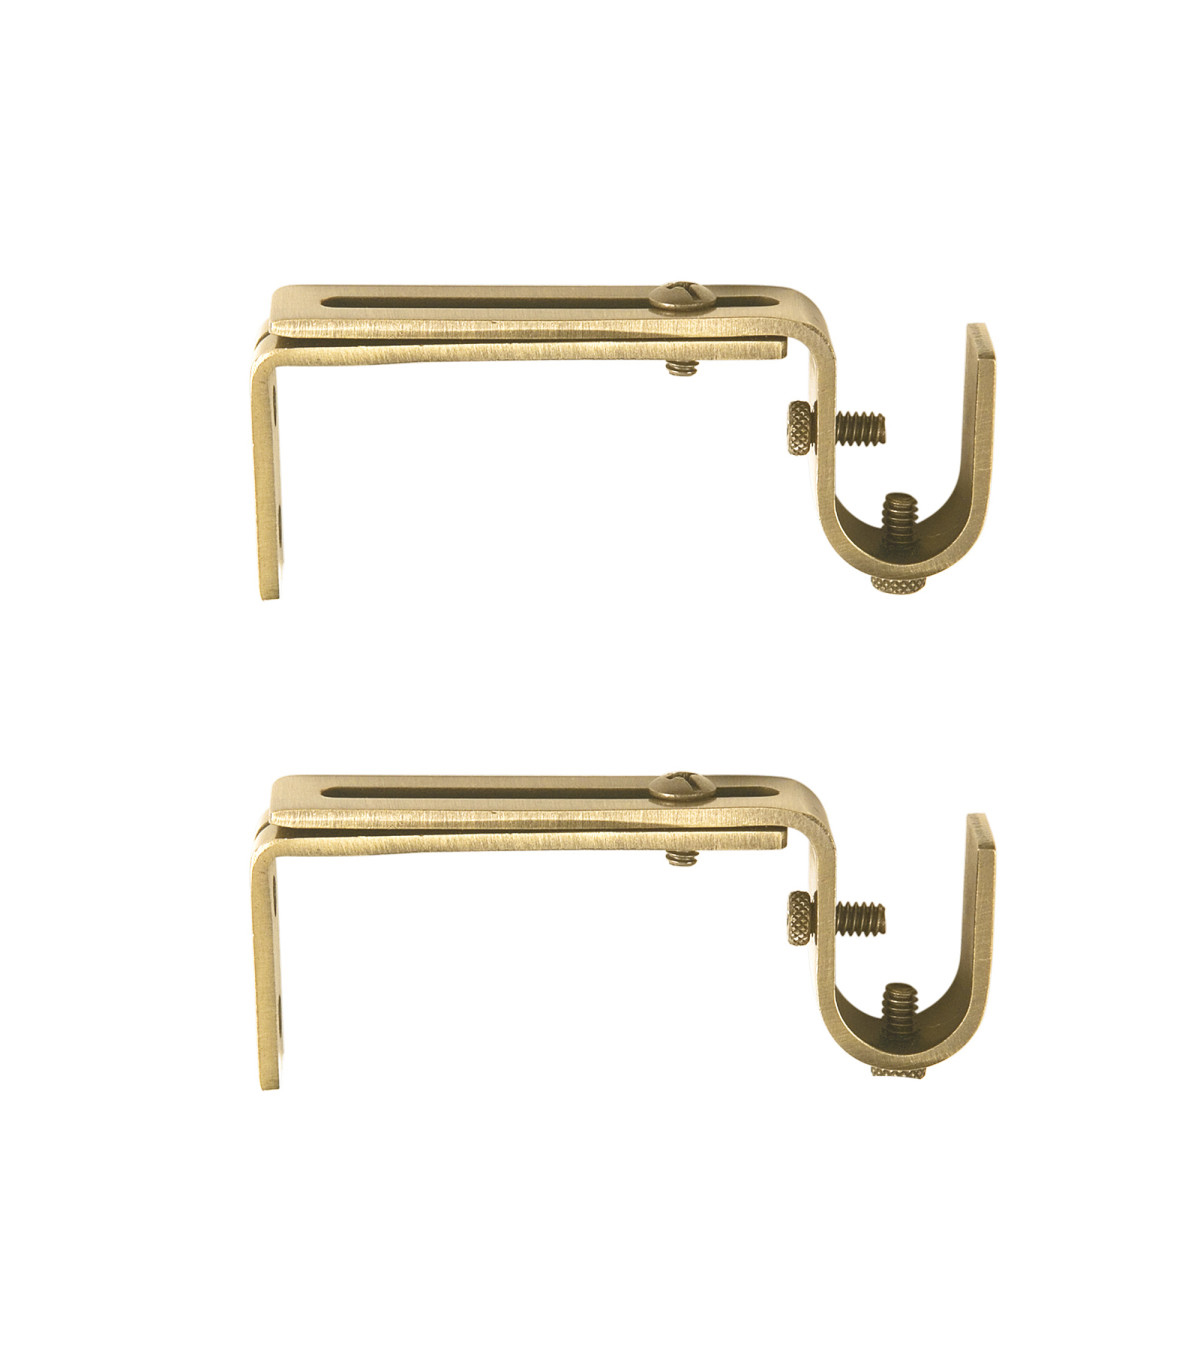 Adjustable Curtain Rods Kenney Adjustable Curtain Rod Mounting Brackets Gold